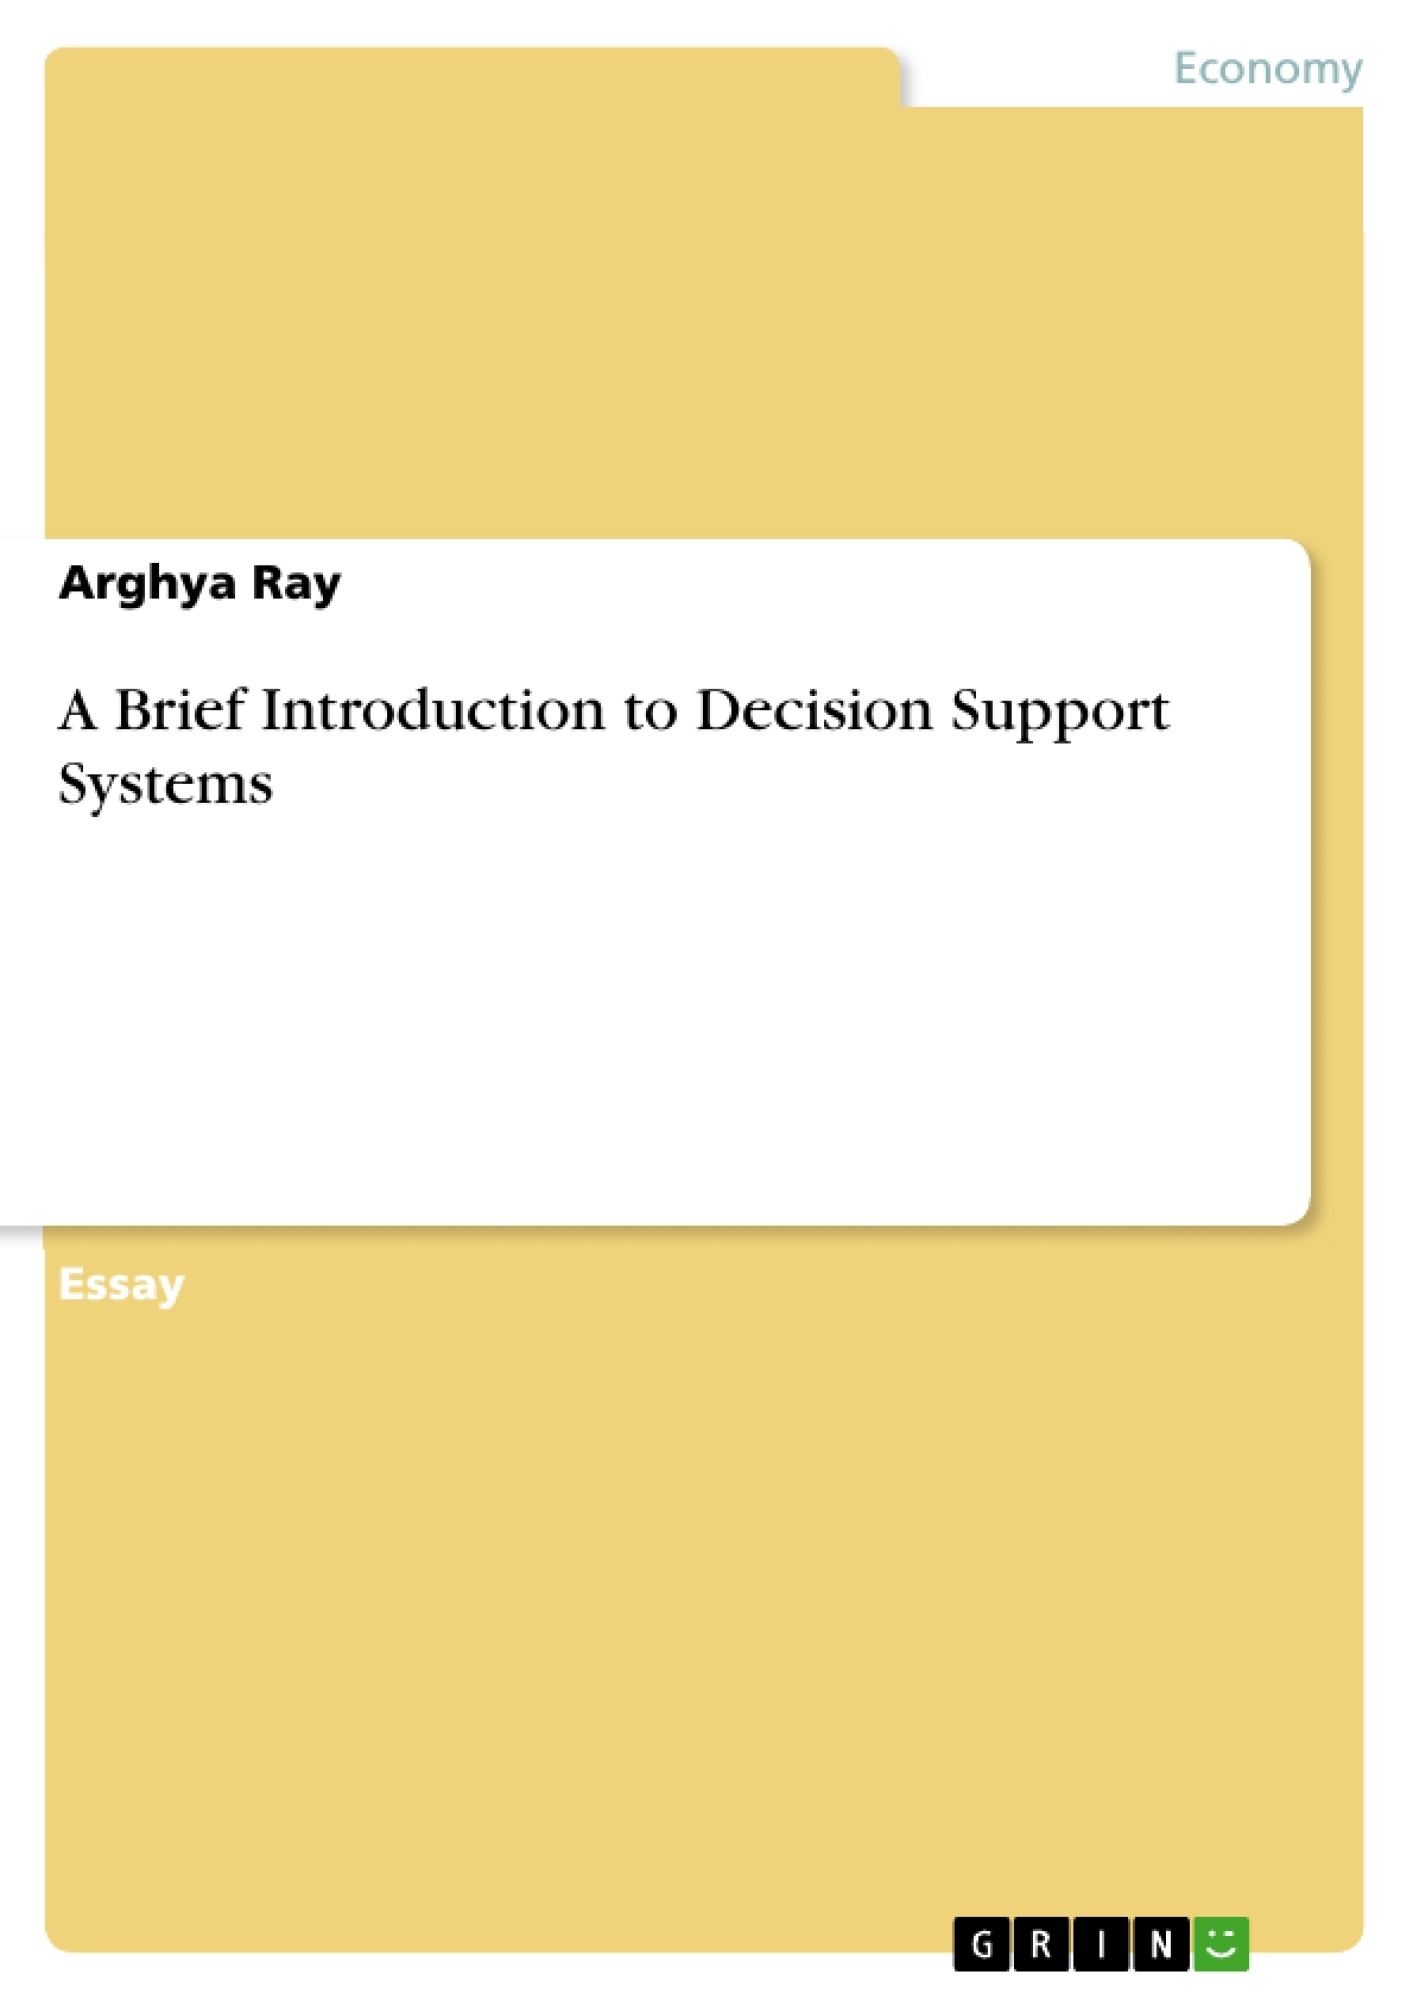 Master thesis decision support system